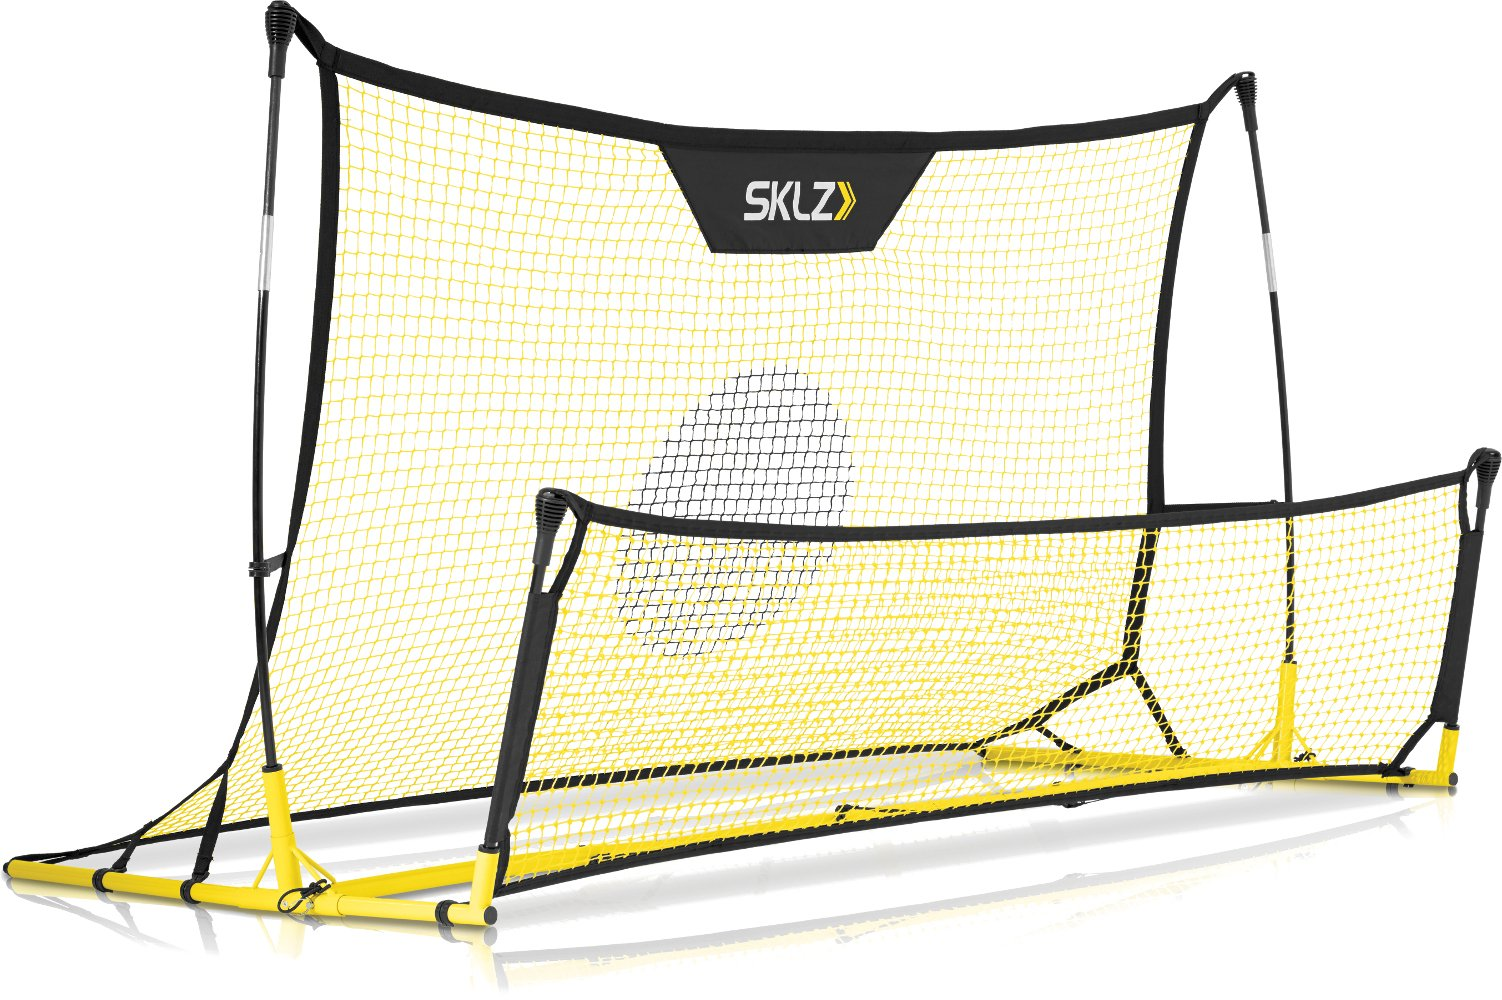 SKLZ Quickster Soccer Trainer - Portable Soccer Rebounder Net Works as a Soccer Volley Trainer, Soccer Passing Trainer and Solo Soccer Trainer. 6-Feet by 4-Feet